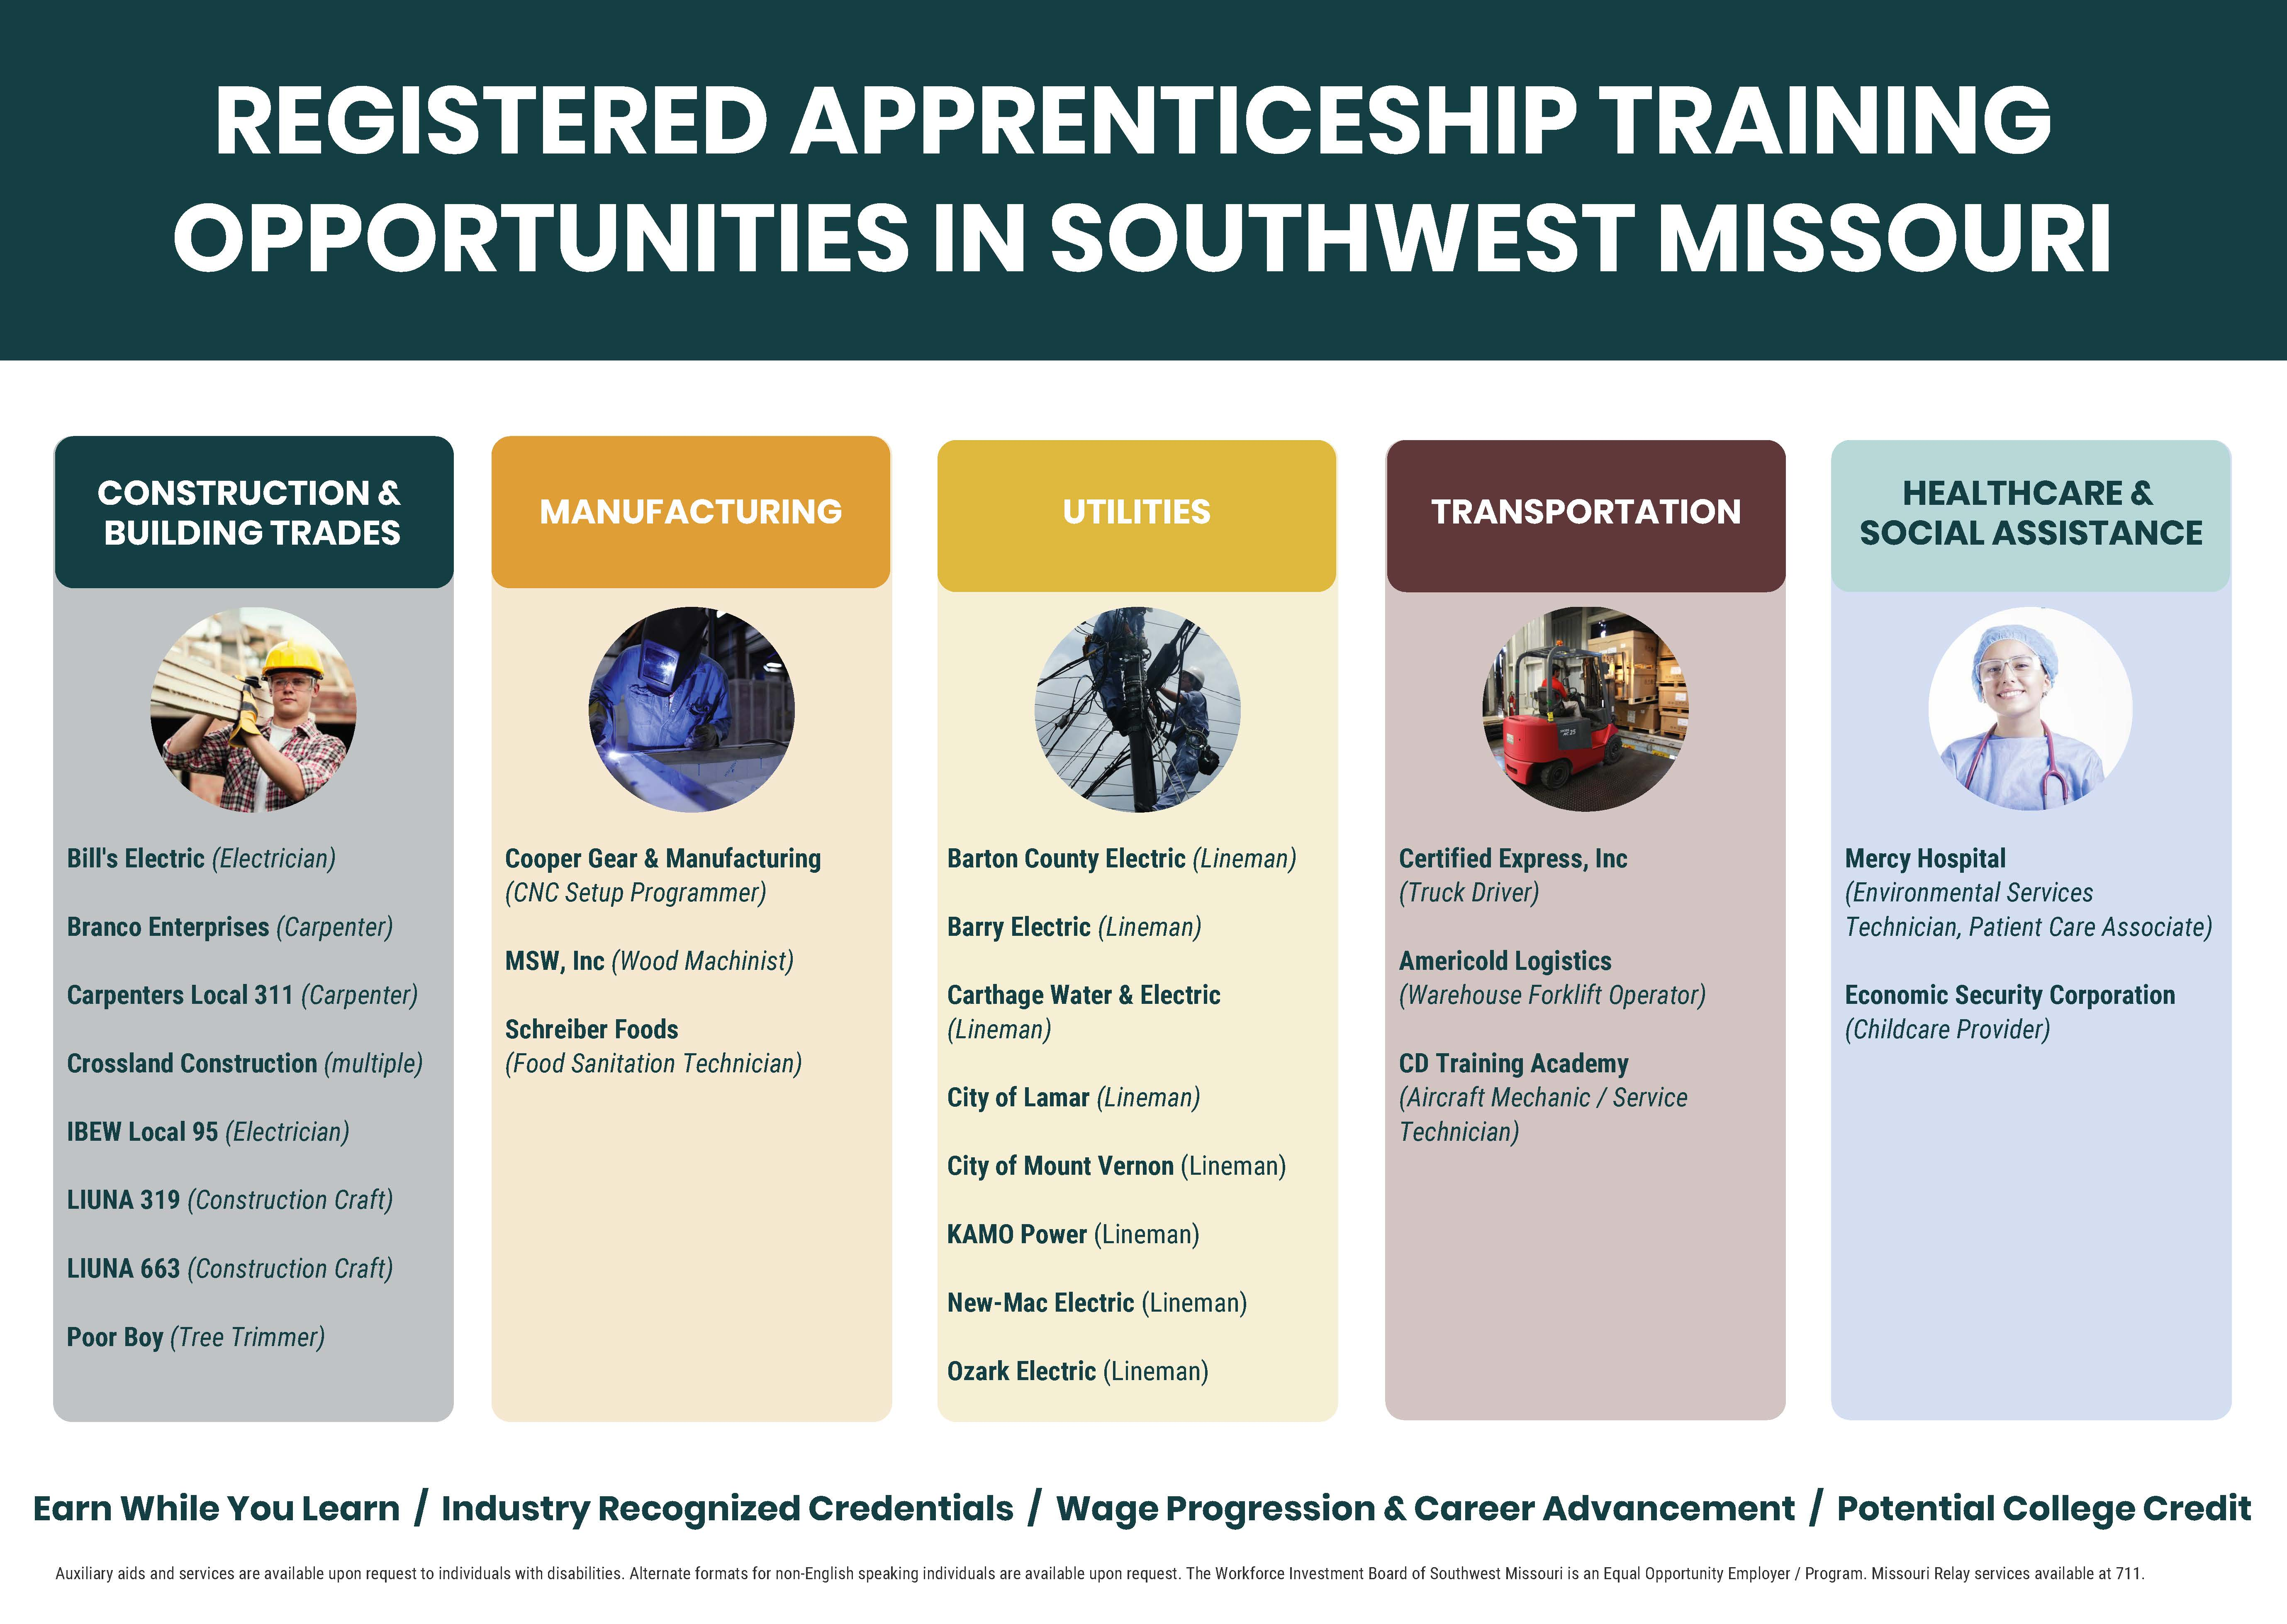 Registered Apprenticeship Training Opportunities in Southwest Missouri